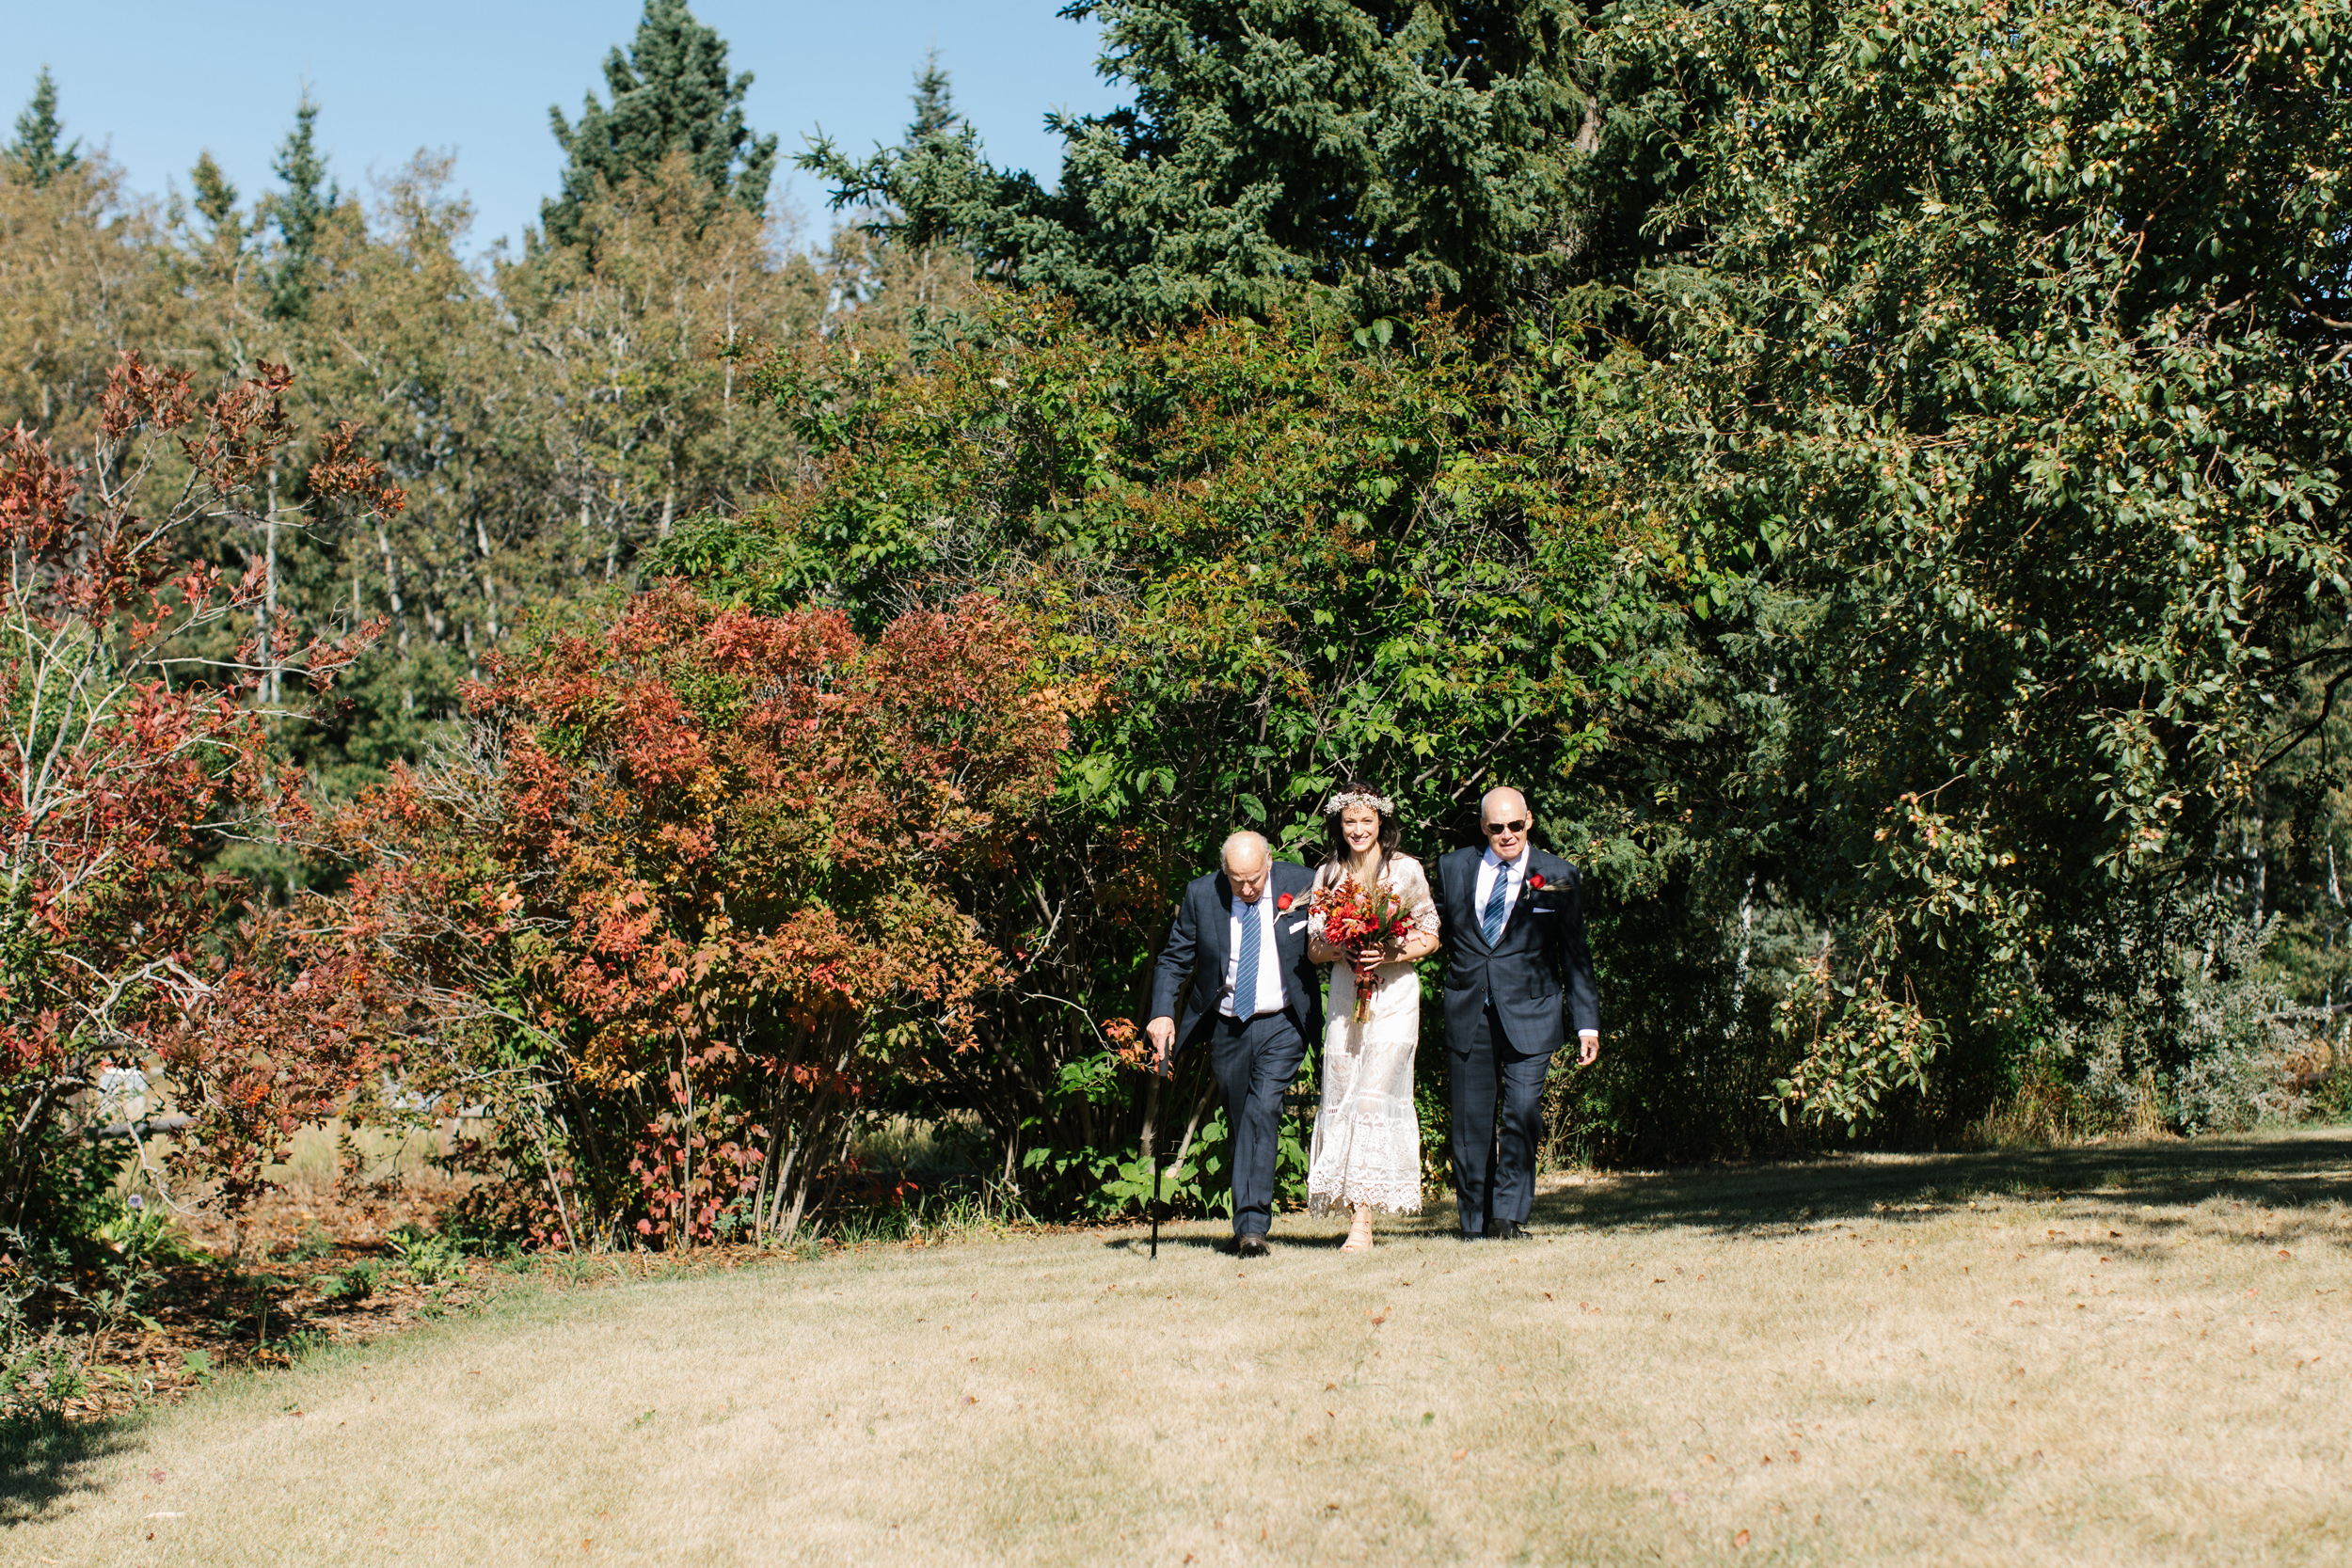 Calgary_Intimate_Backyard_Wedding0006.jpg